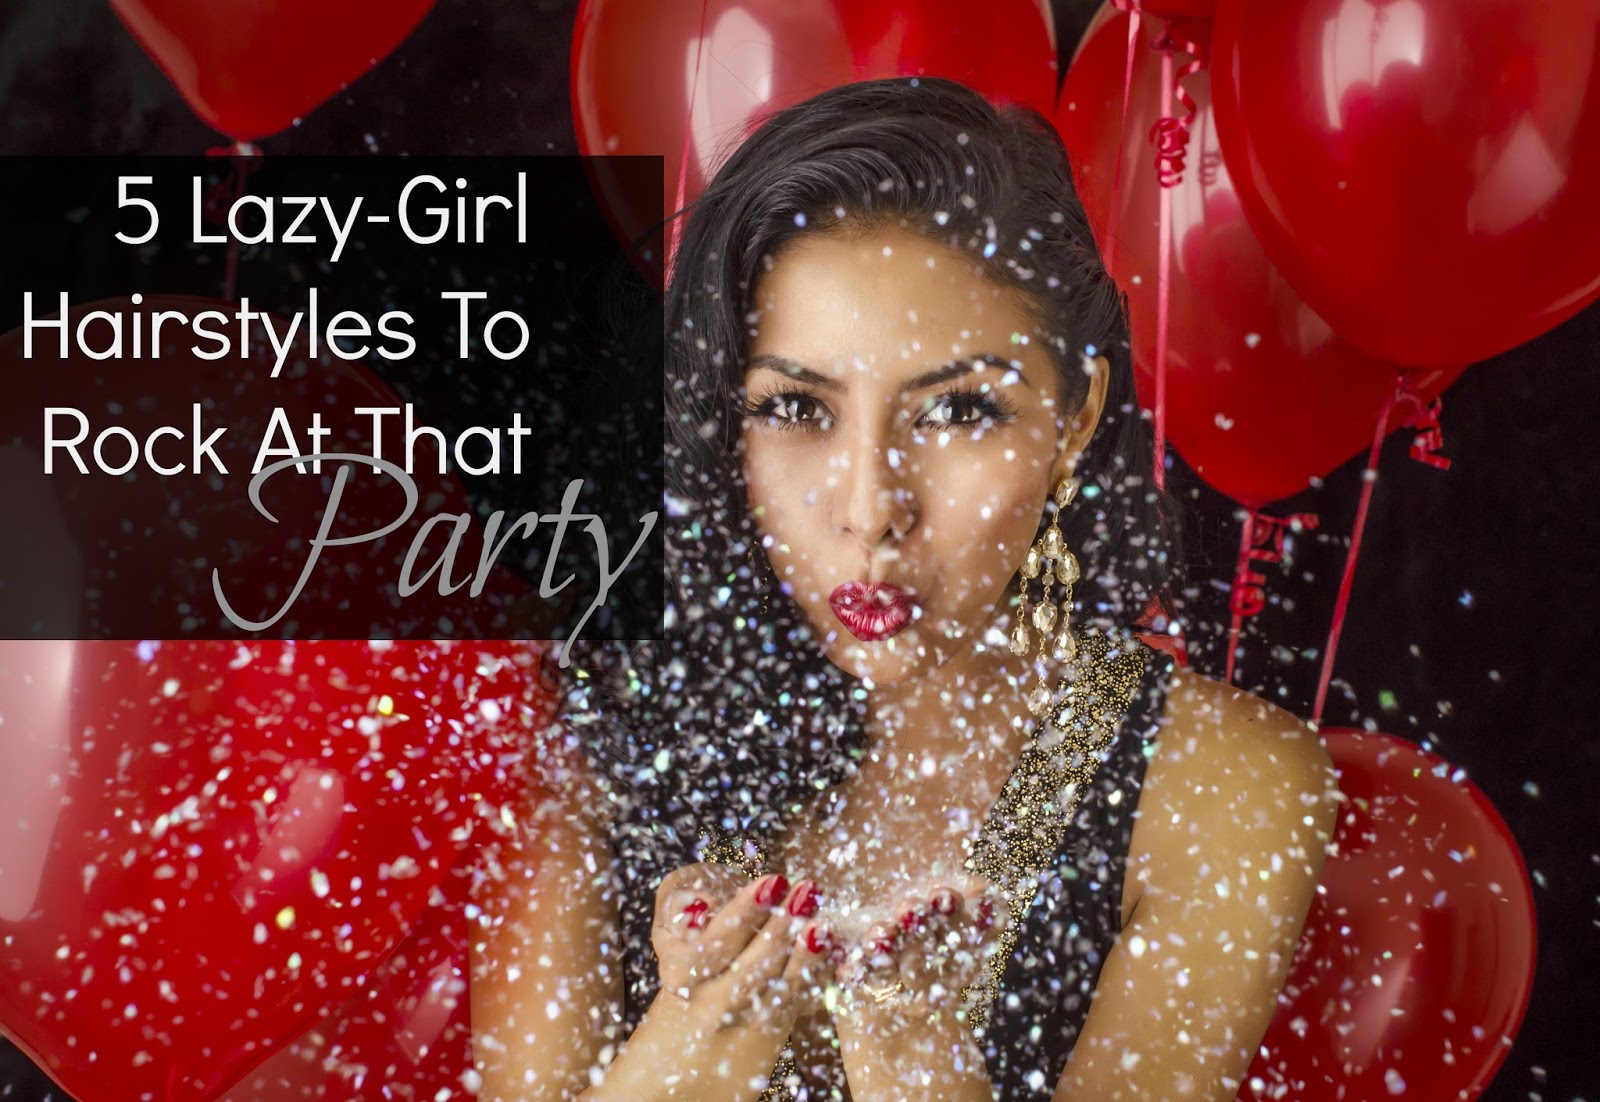 5 Lazy-Girl Hairstyles To Rock At That Party